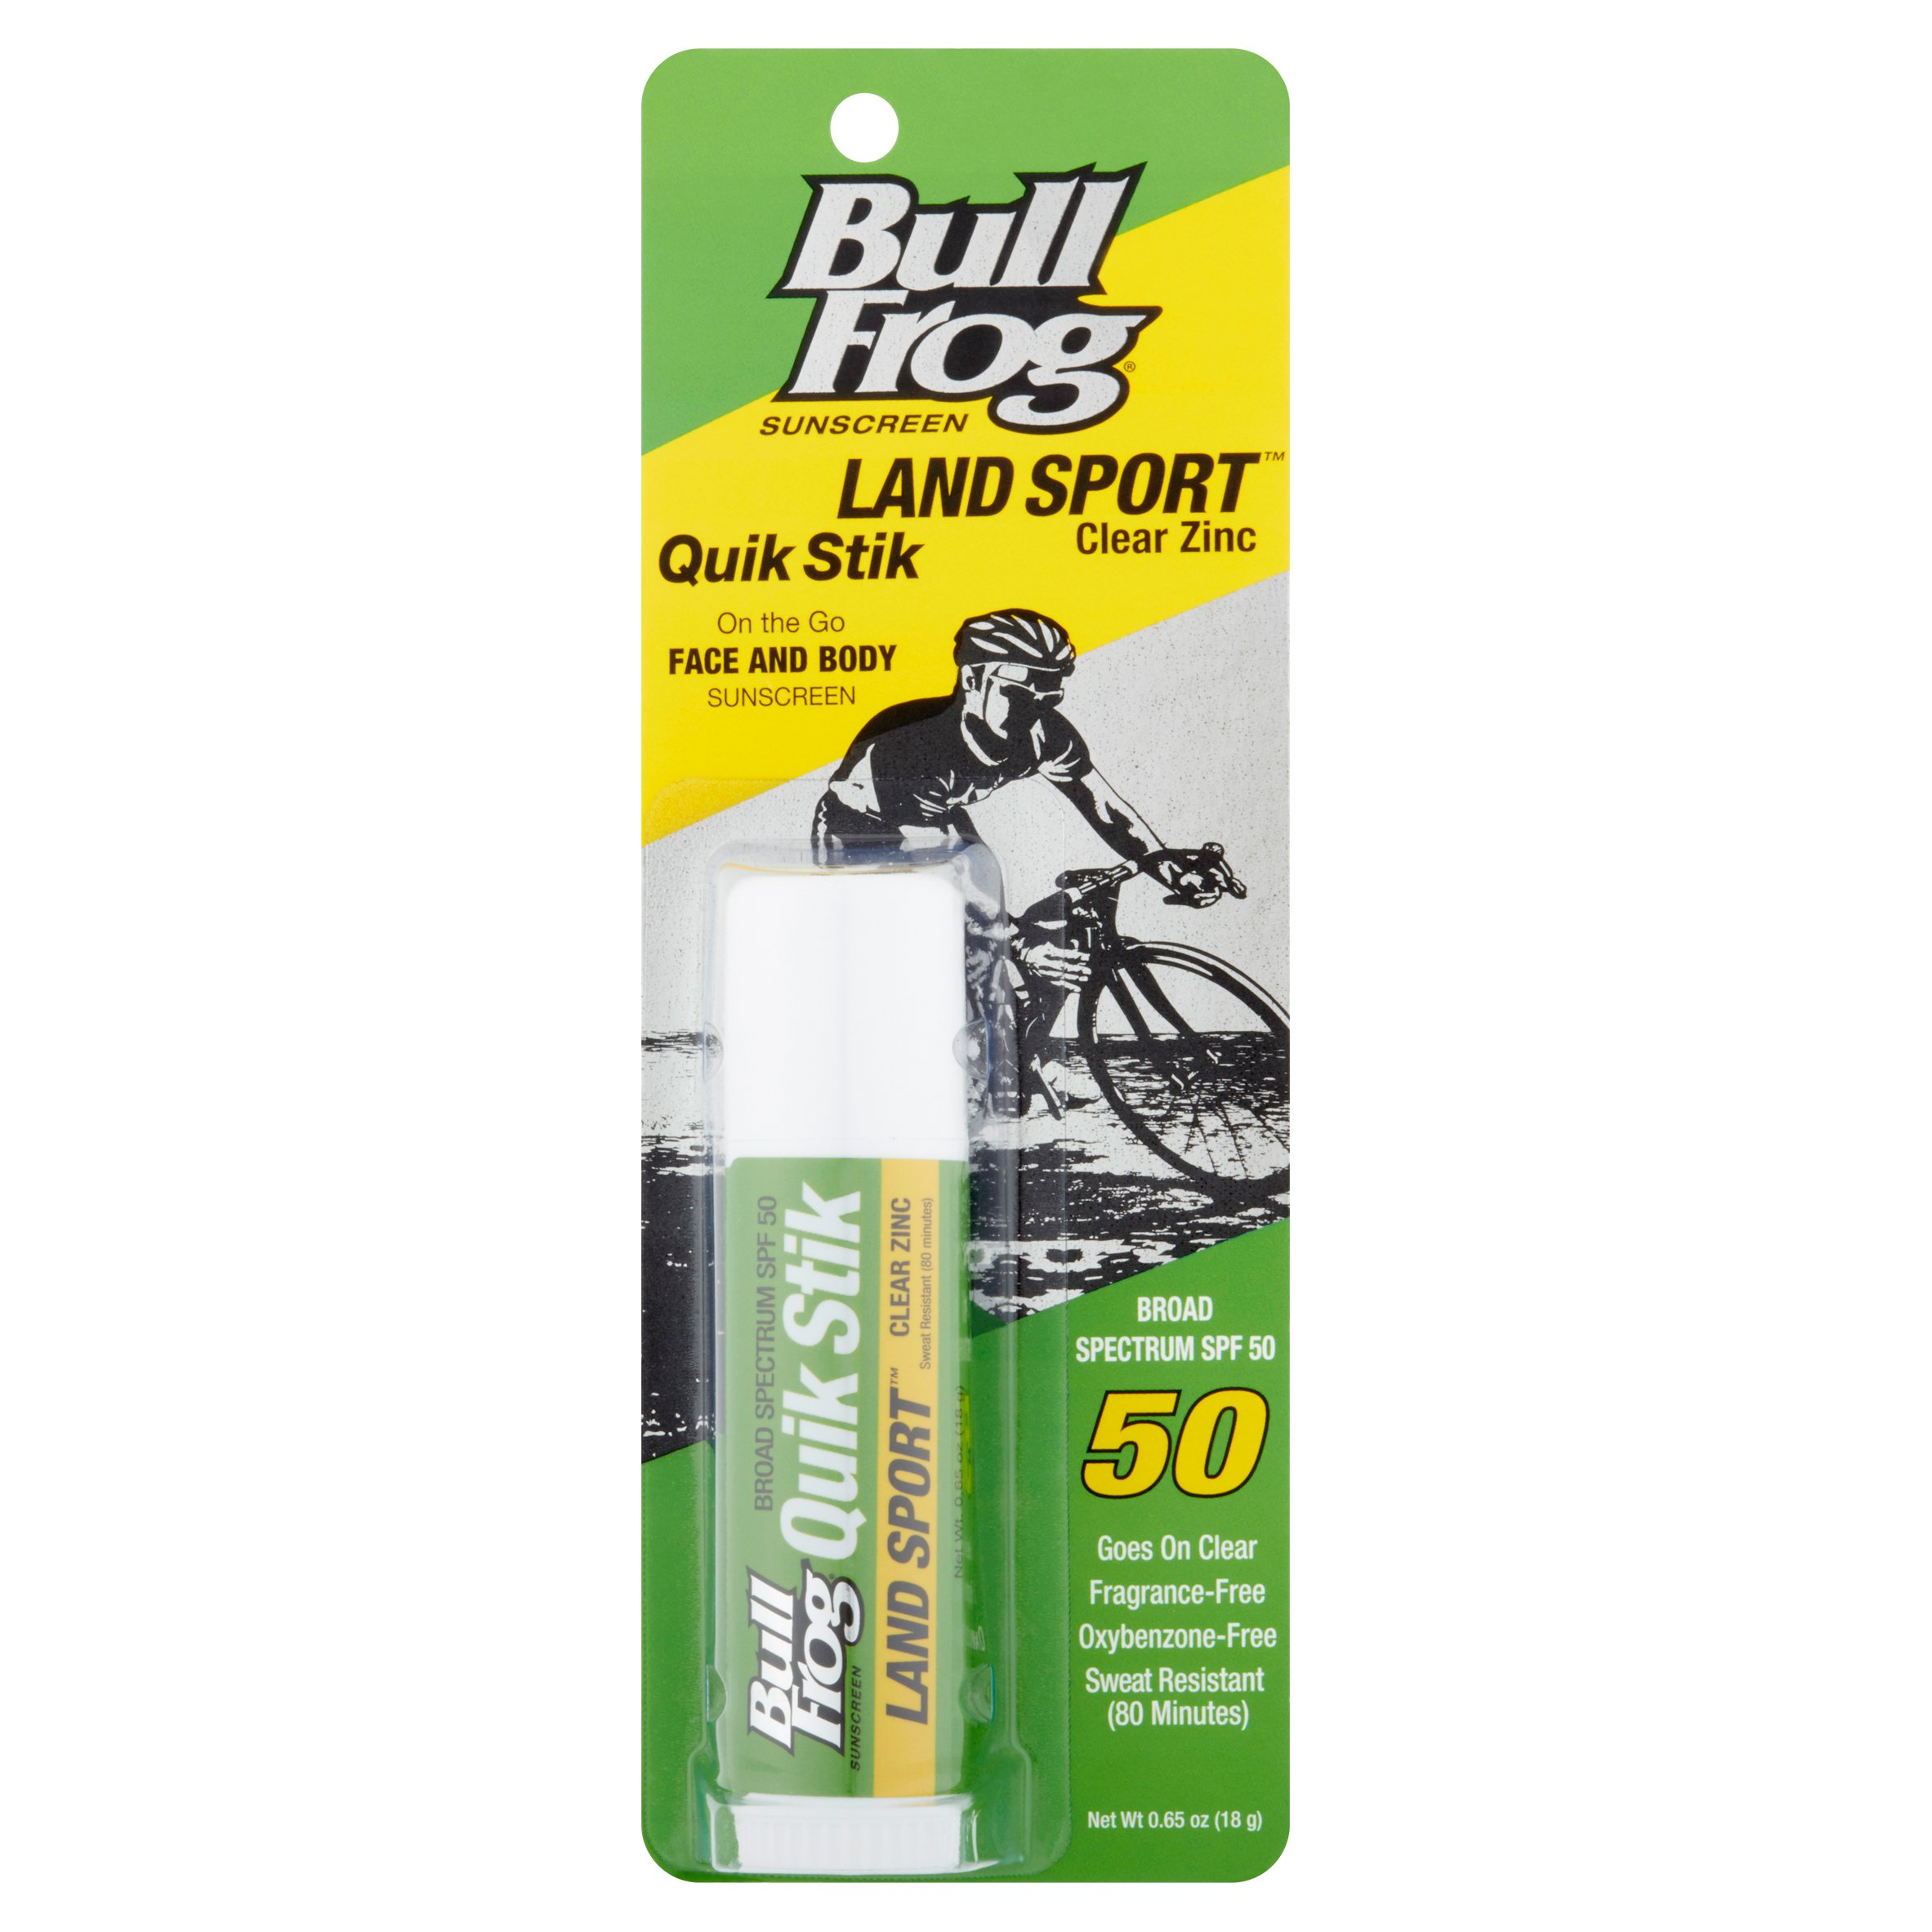 Bull Frog Land Sport Quik Stik On the Go Face and Body Sunscreen Broad Spectrum SPF 50, 0.65 oz